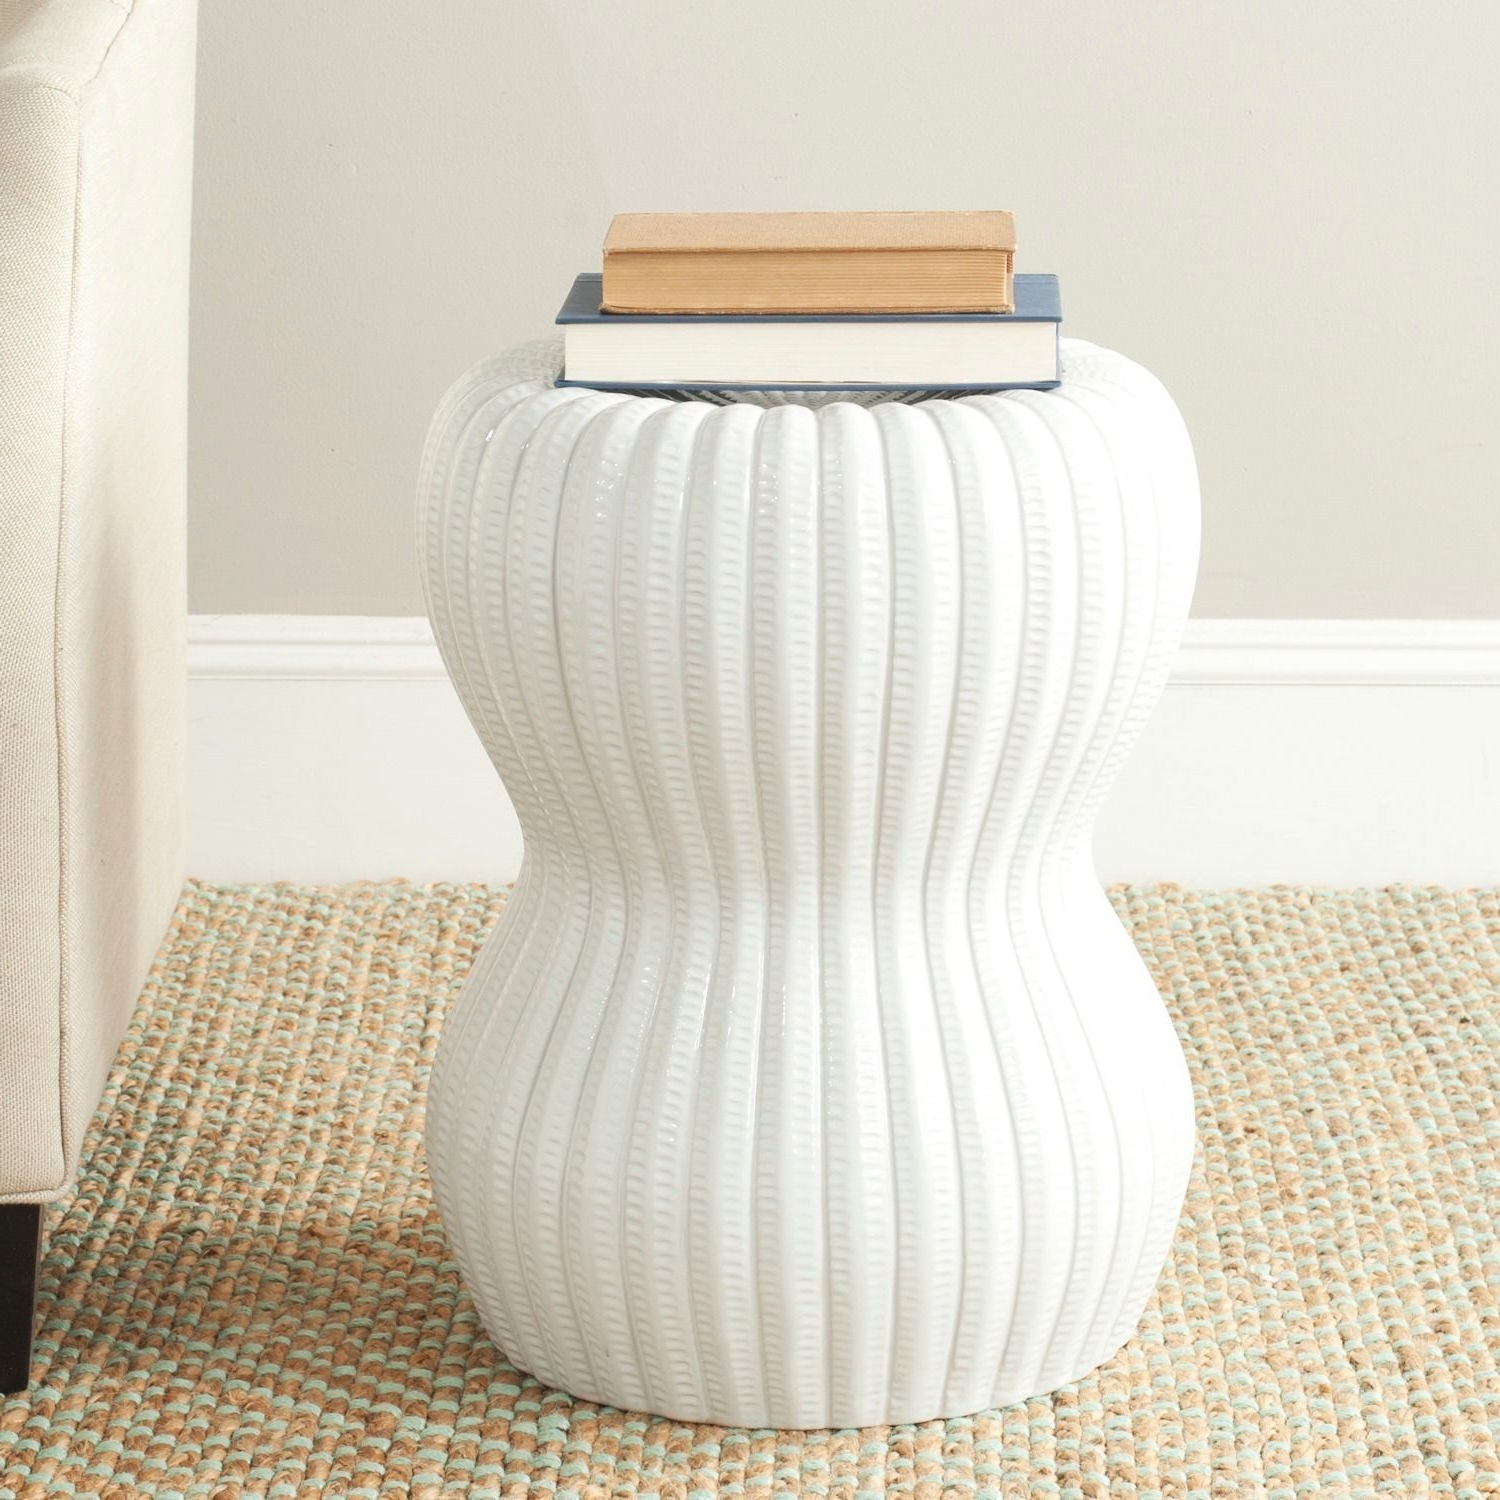 Safavieh Paradise Oval White Ceramic Decorative Garden Stool Pertaining To Famous Karlov Ceramic Garden Stools (View 14 of 30)